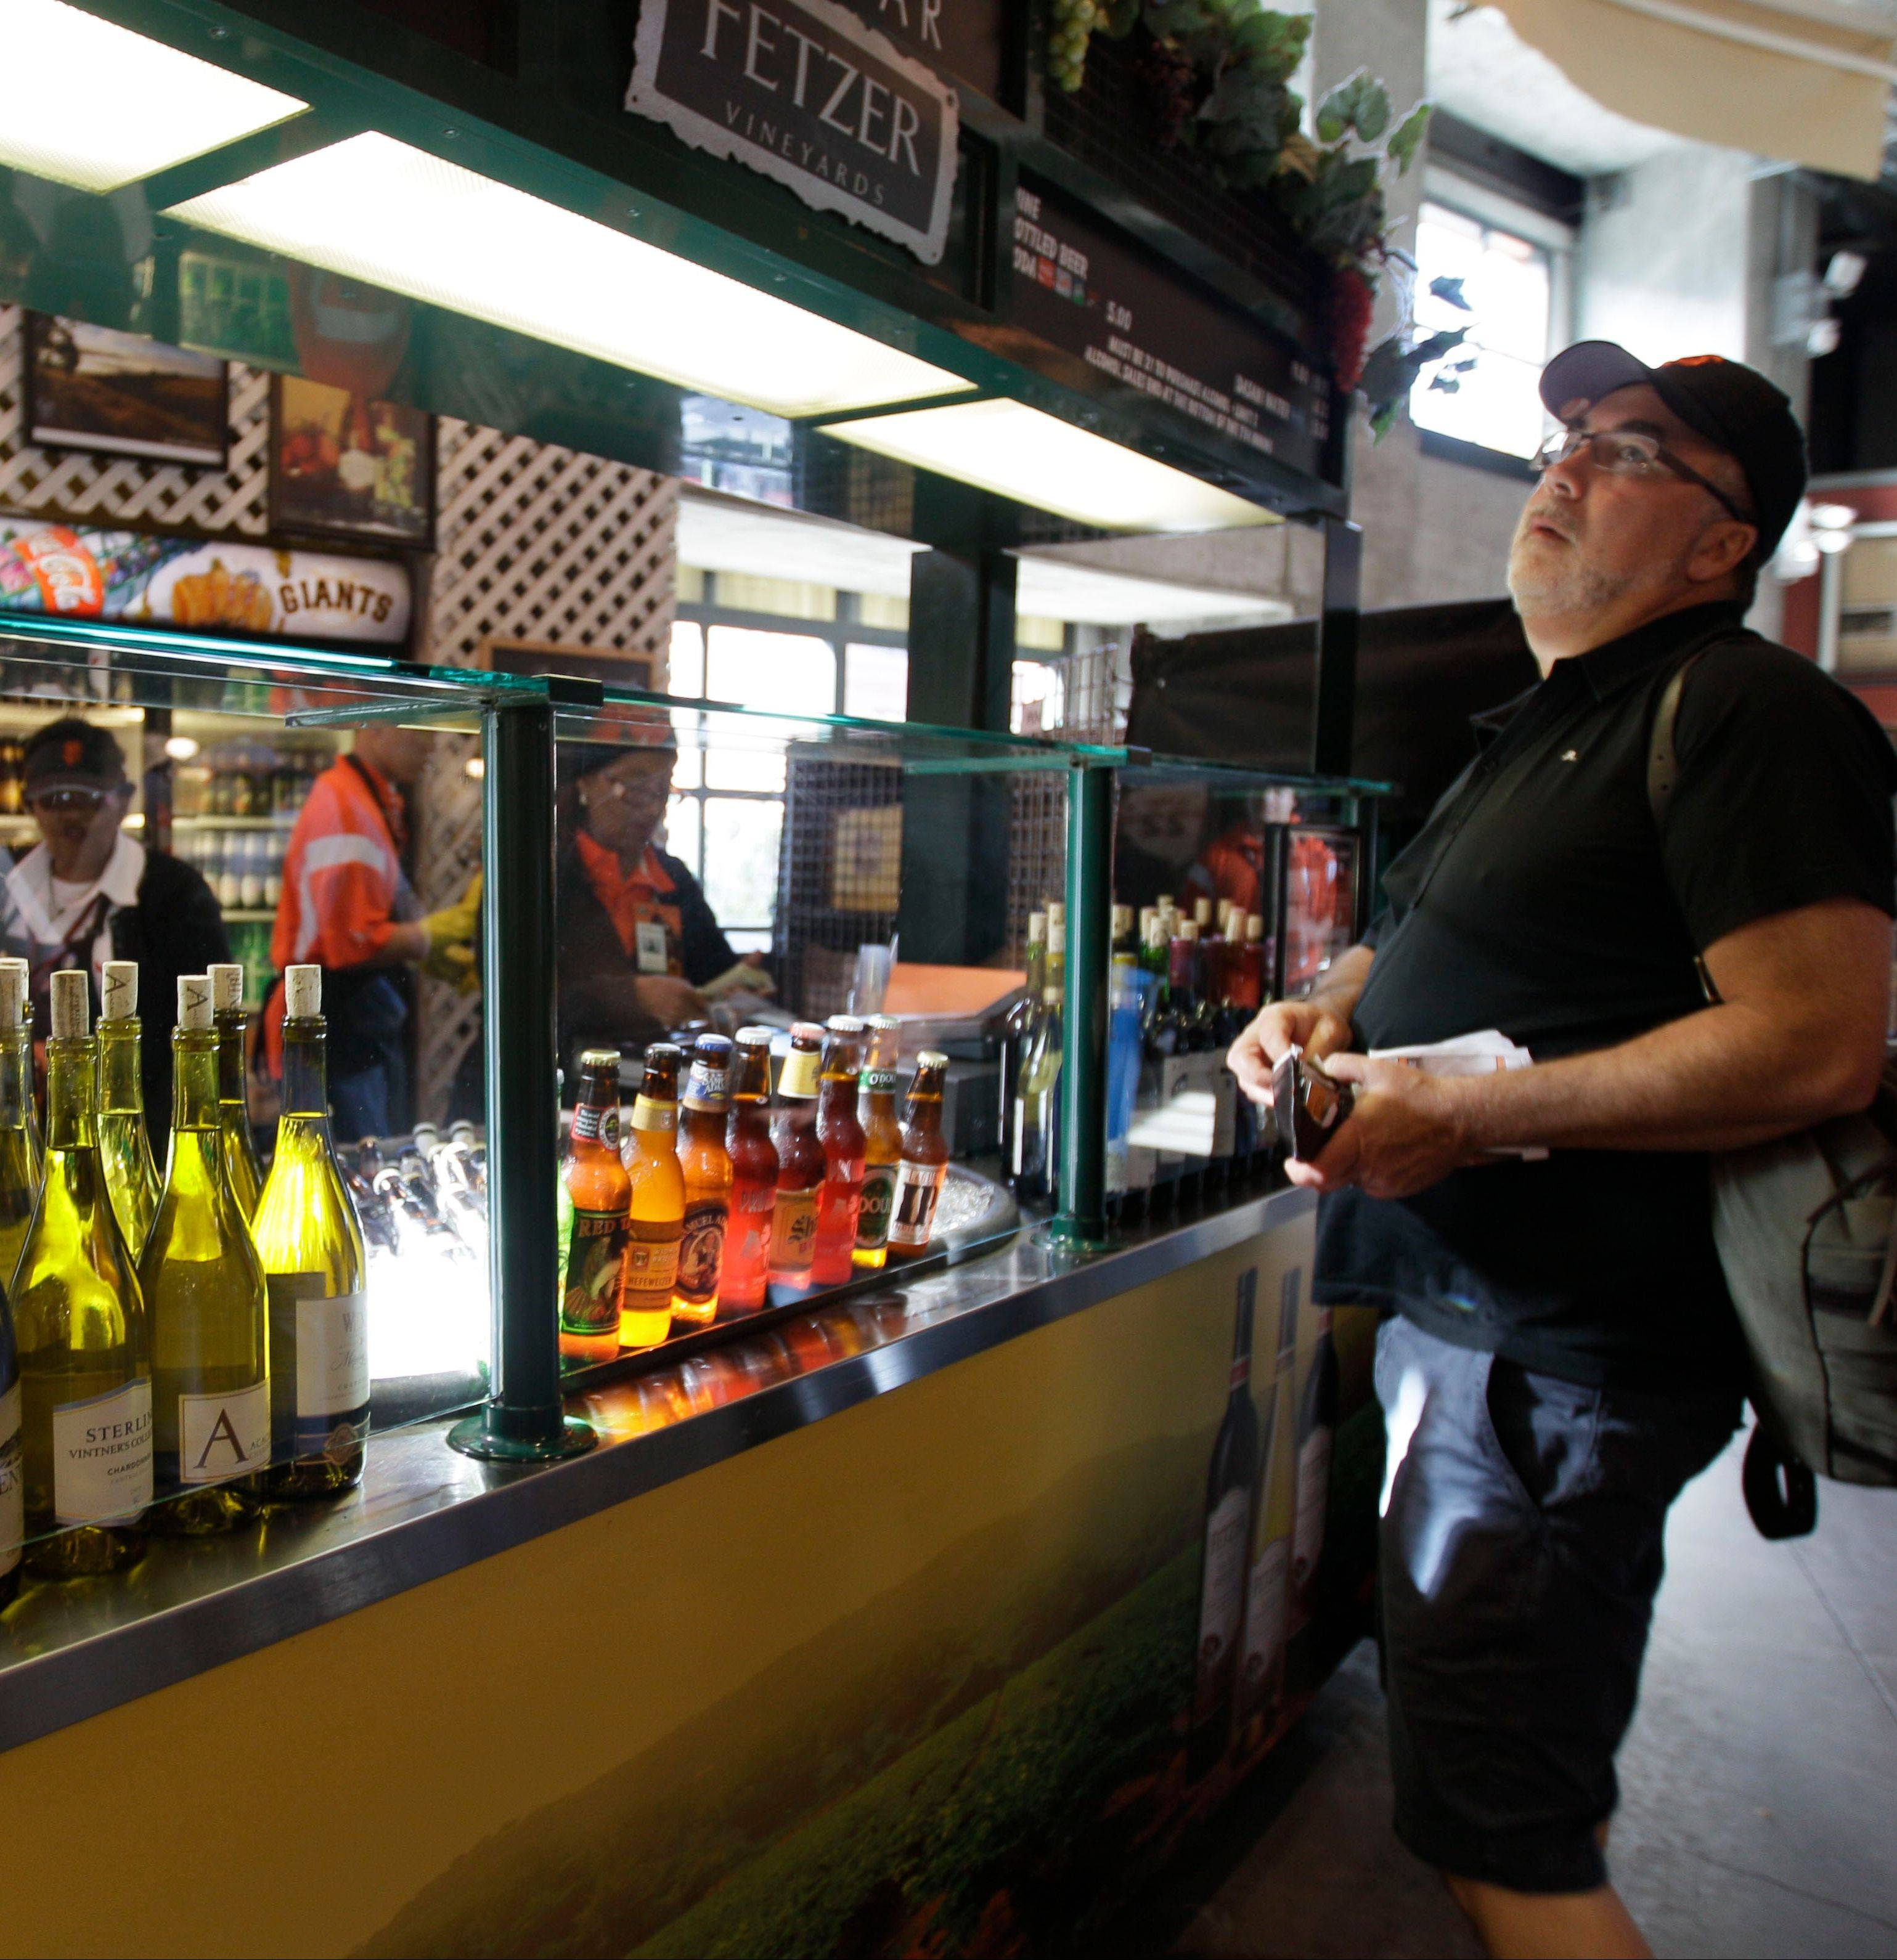 A fan looks over the menu at a wine bar at AT&T Park before the San Francisco Giants baseball game earlier this season. As the World Series approaches, fans of the grape and the great American pastime have more choices at ballparks.